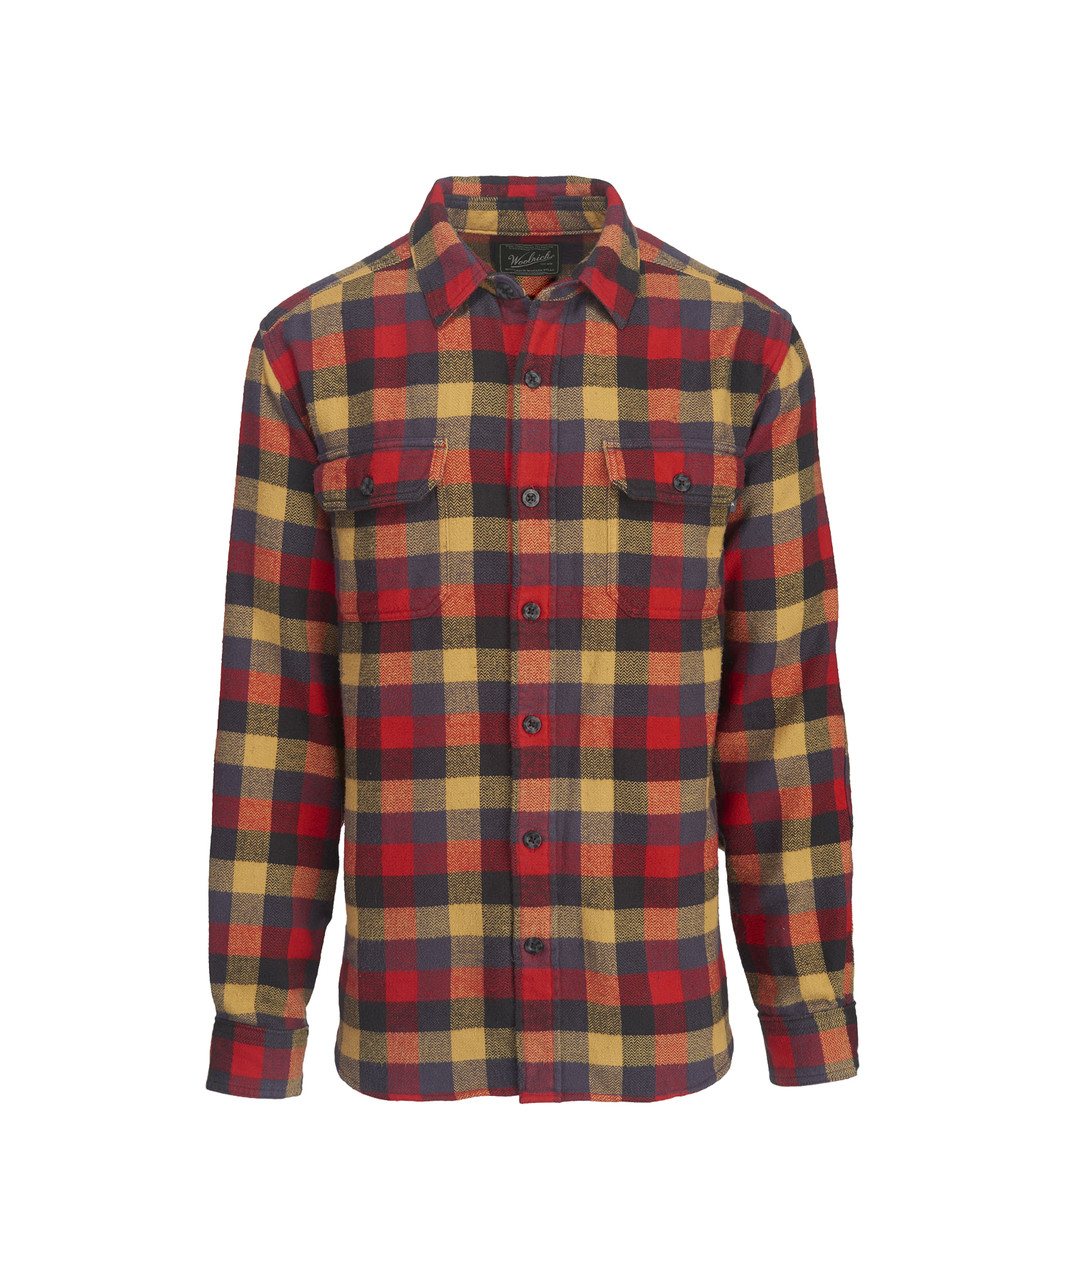 Mens Oxbow Bend Plaid Flannel Shirt 100 Cotton Woolrich